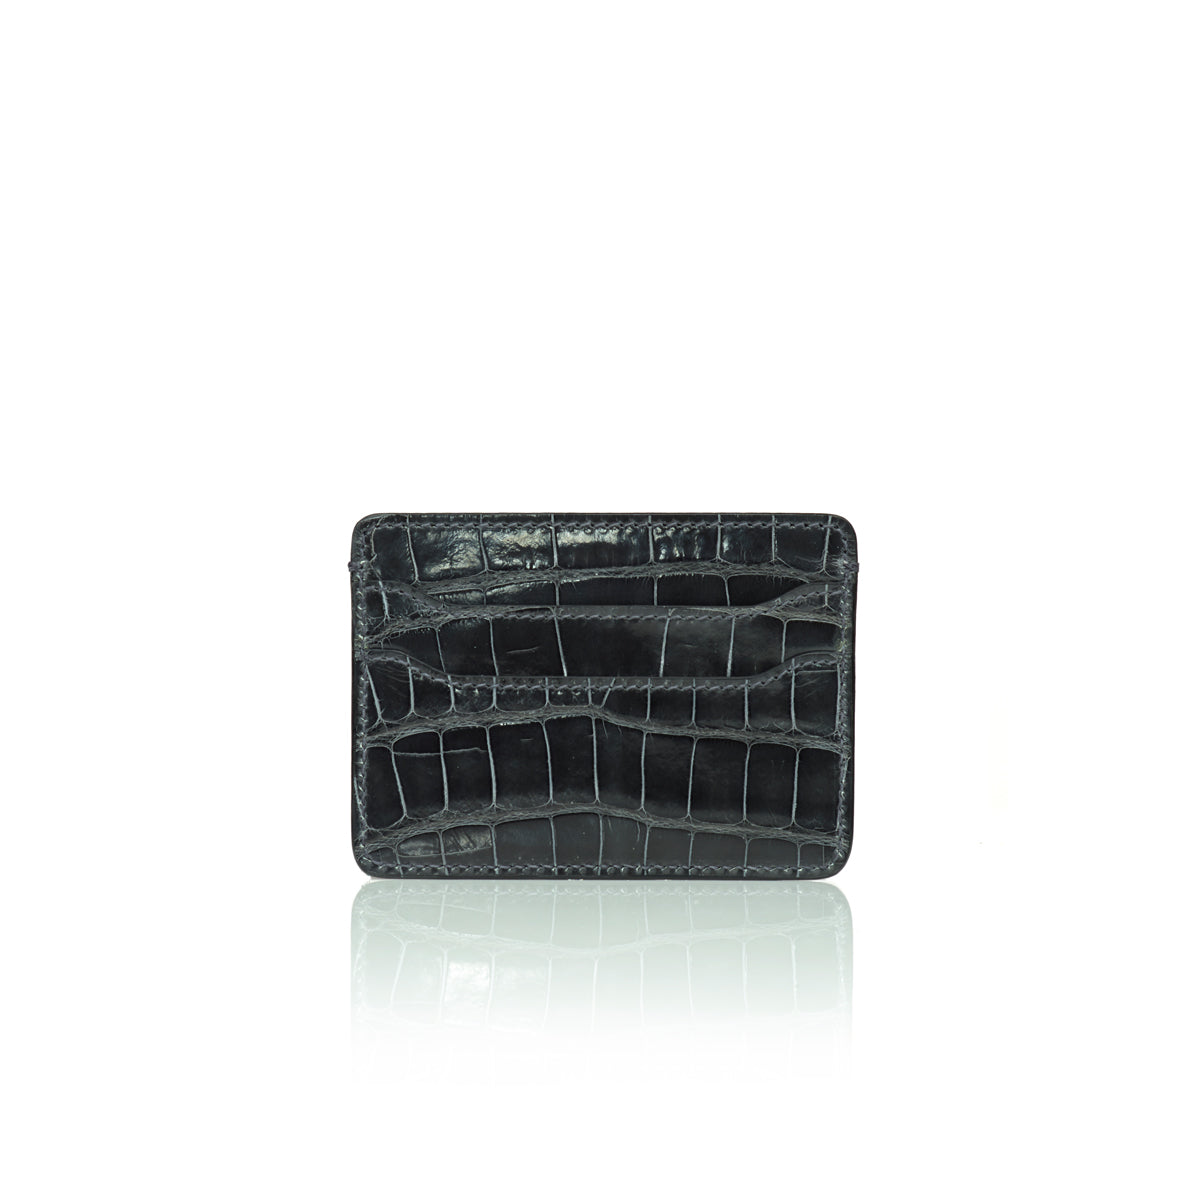 Credit Card Case - Smokey Grey Alligator